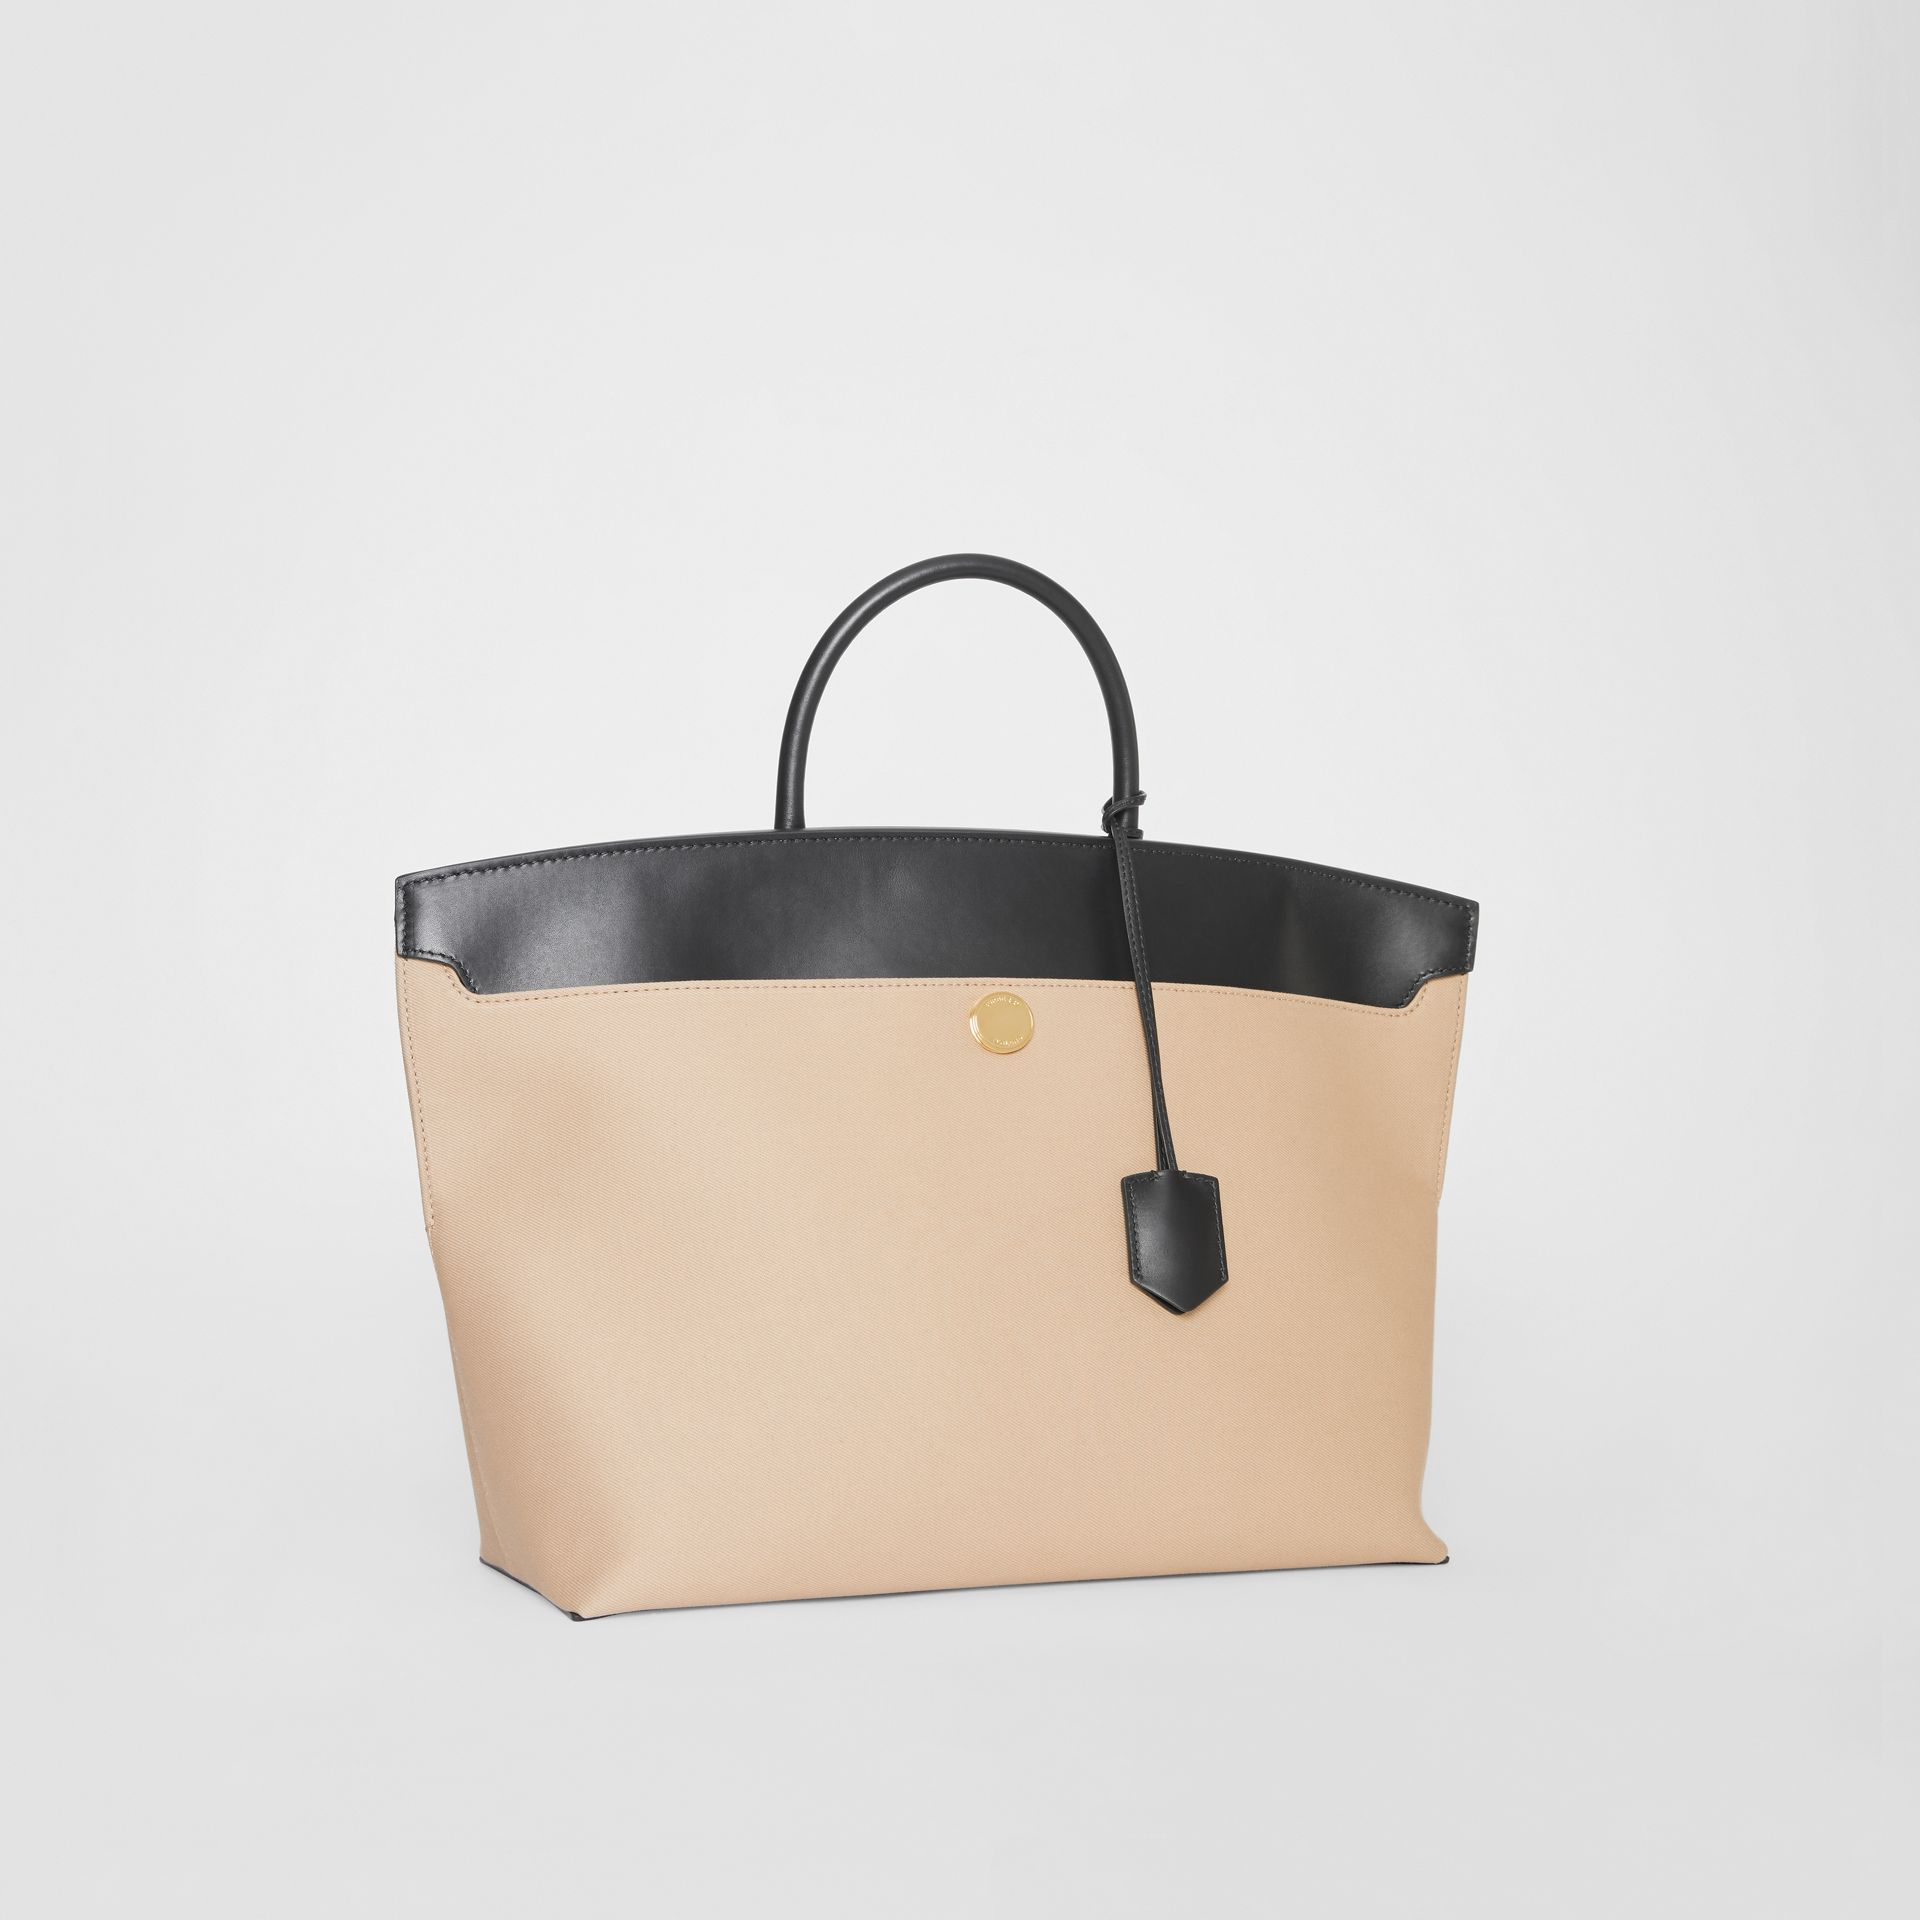 Cotton Canvas and Leather Society Top Handle Bag in Black/honey - Women | Burberry - gallery image 6